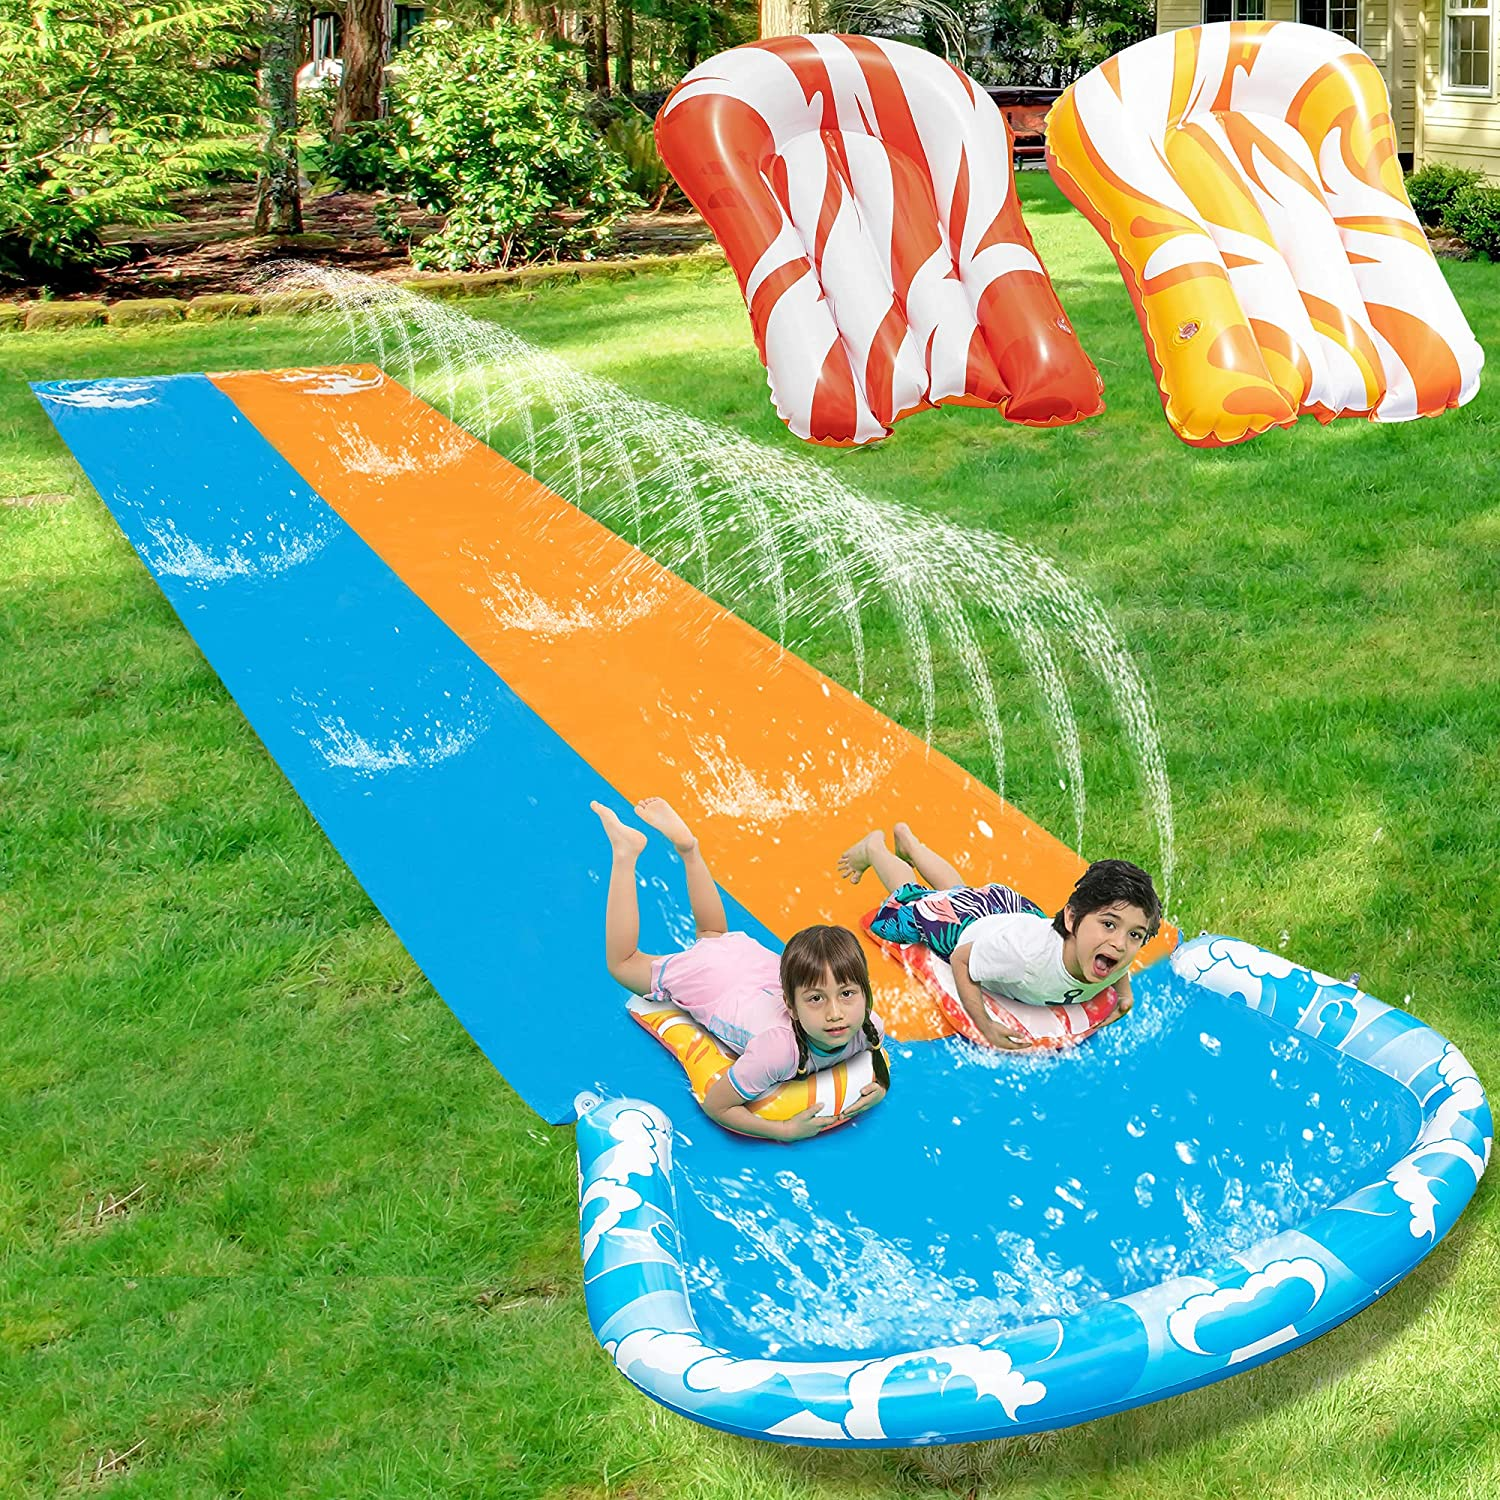 Sales results No. 1 JOYIN 20ft x 62in Slip and 2 Bodyboards Slide Water with Minneapolis Mall